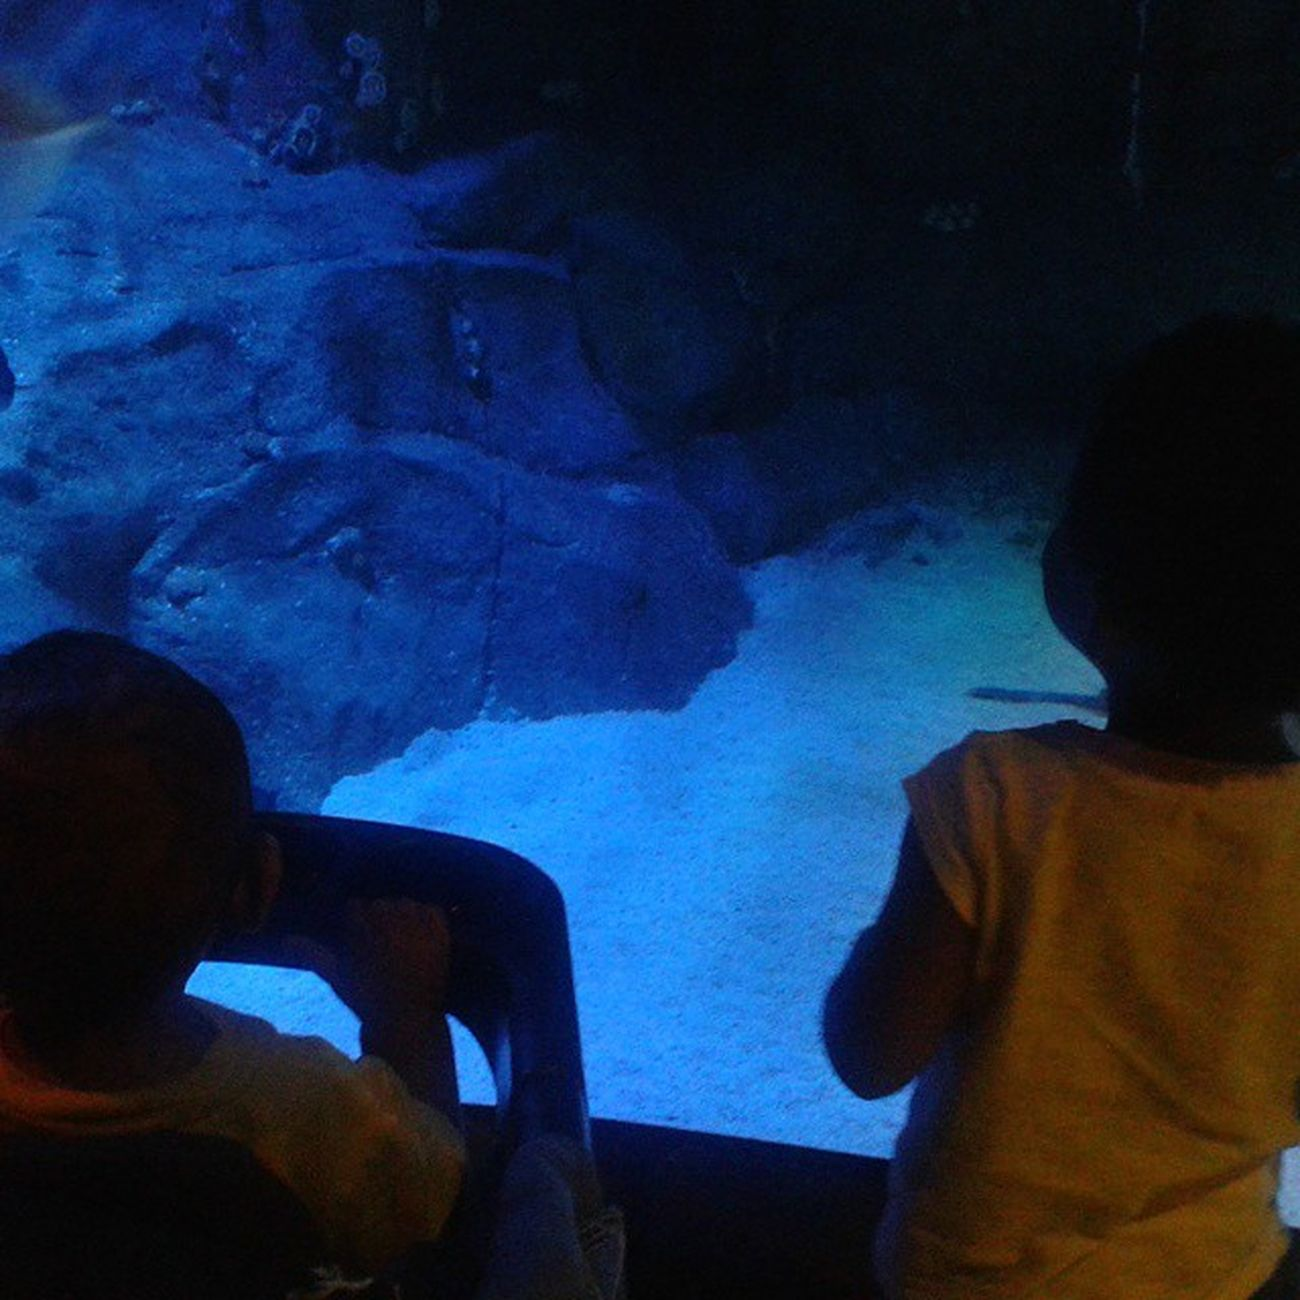 Took the Brats to GrapevineSeaLife today... I am so blessed to be able to spend my days watching them grow and explore... Seeing them get excited about Godscreations helps me to appreciate Myblessings that much more!!! 😍 SAHMLife Fieldtrip Aquarium WeLoveTheSea AnxiousForDestin